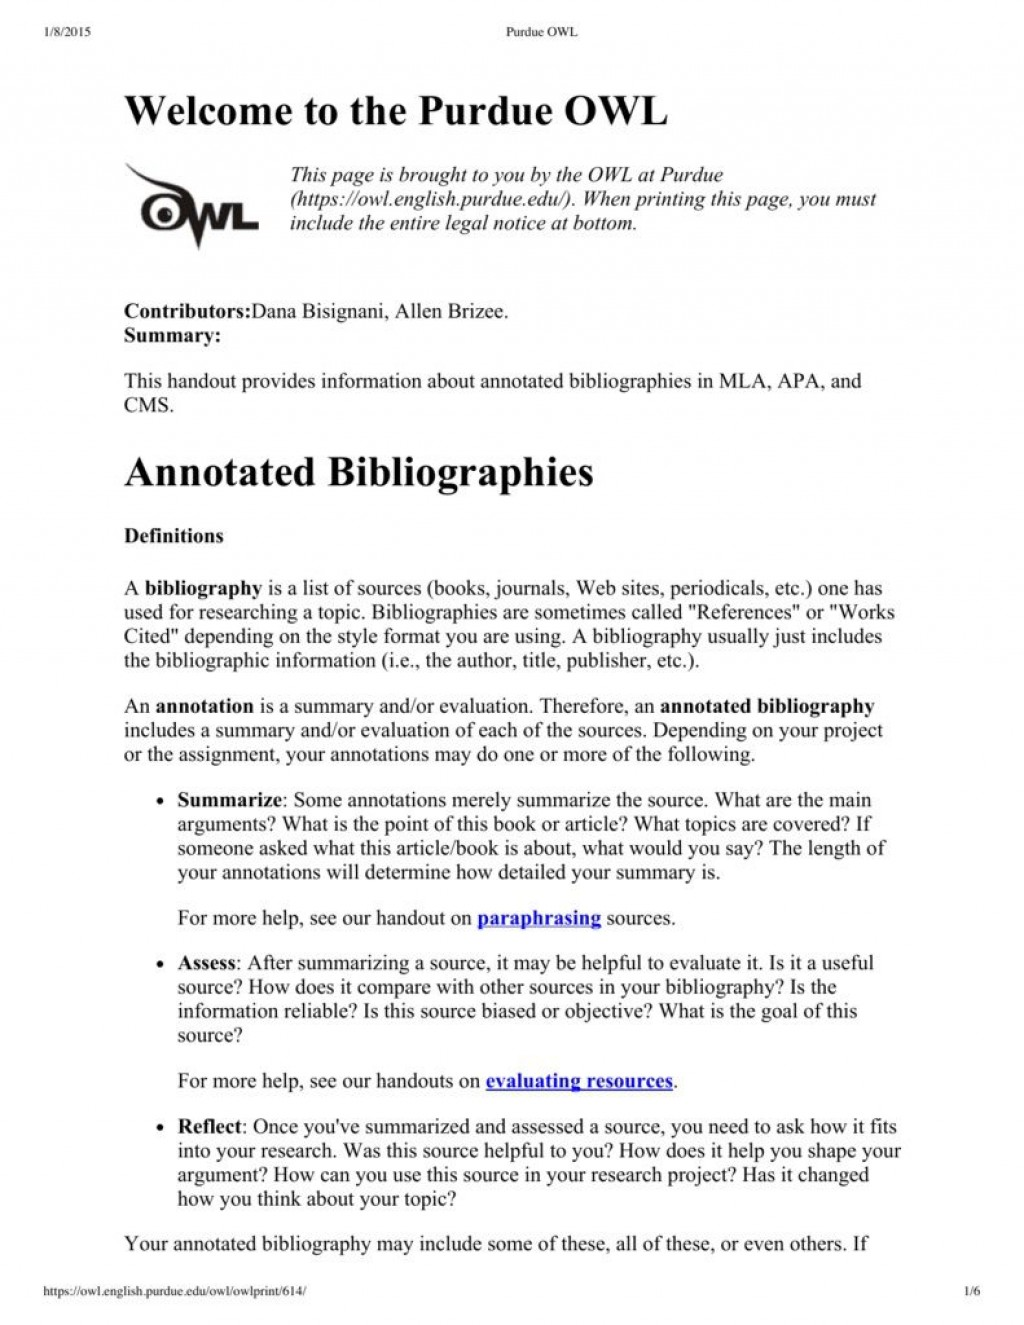 Annotated Bibliography - APA Citation Guide (6th edition) - LibGuides at Columbia College (BC)